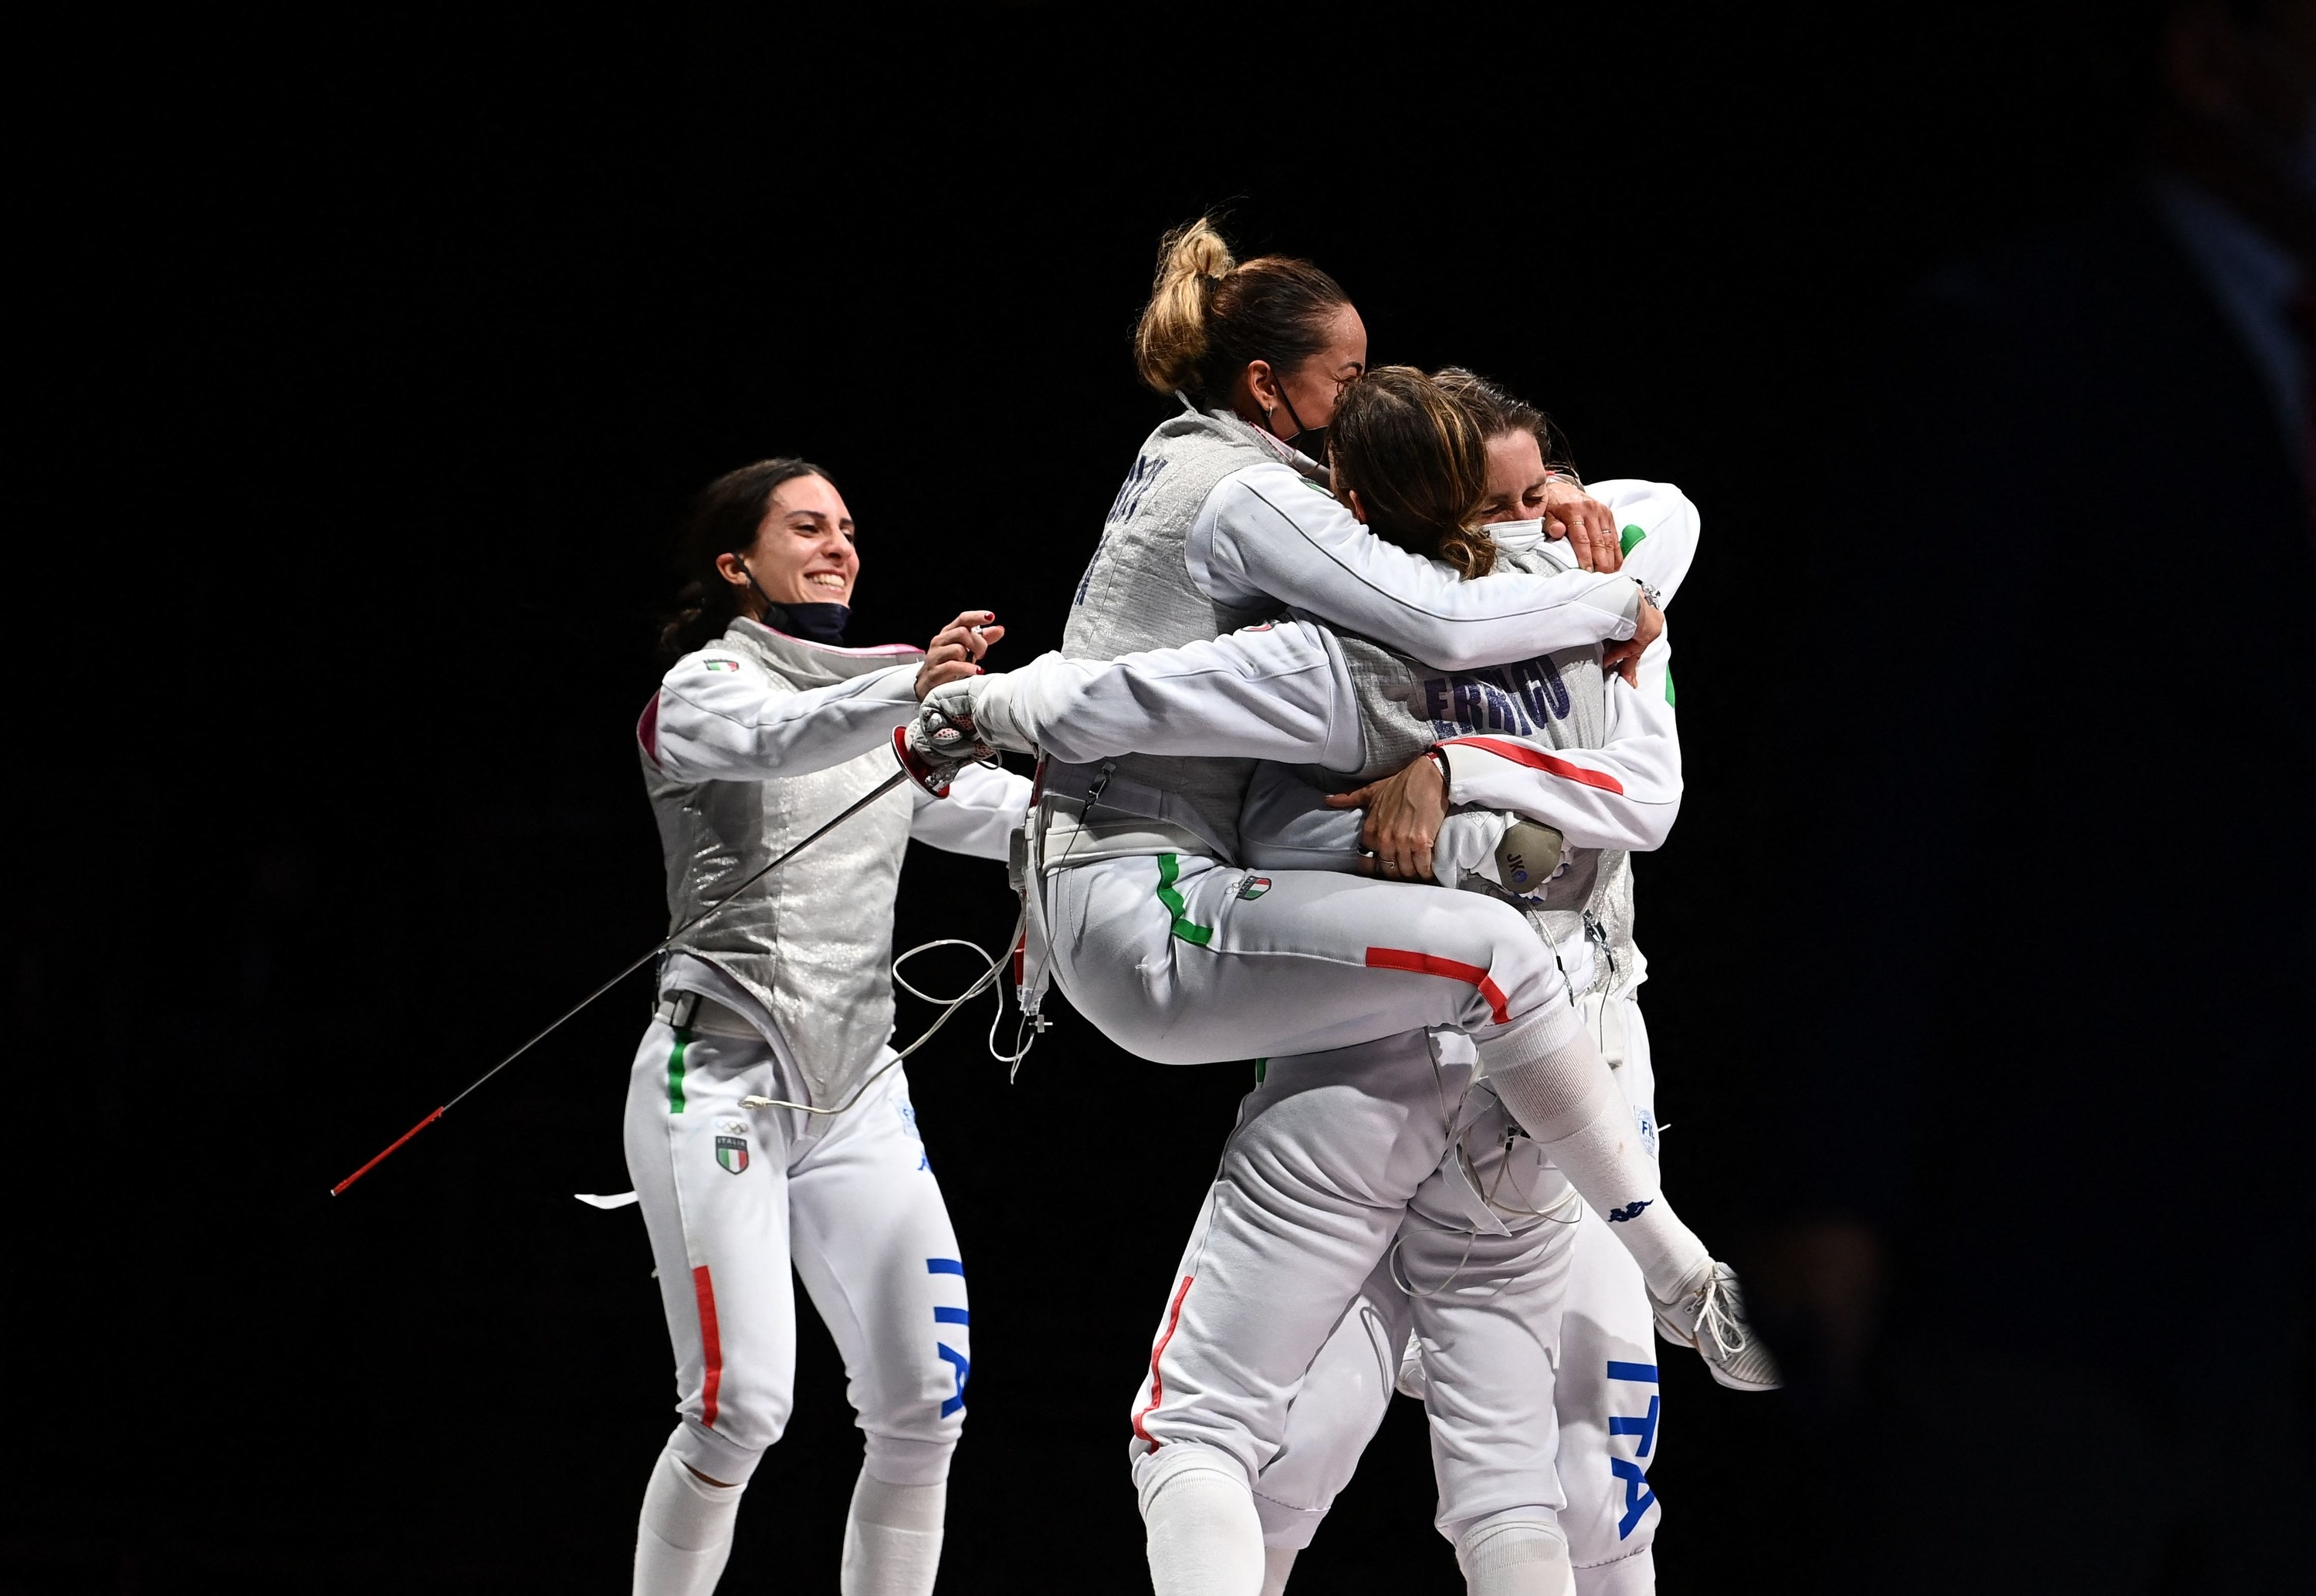 Four smiling women embrace in a group hug, one with her legs wrapped around another's chest in a close embrace